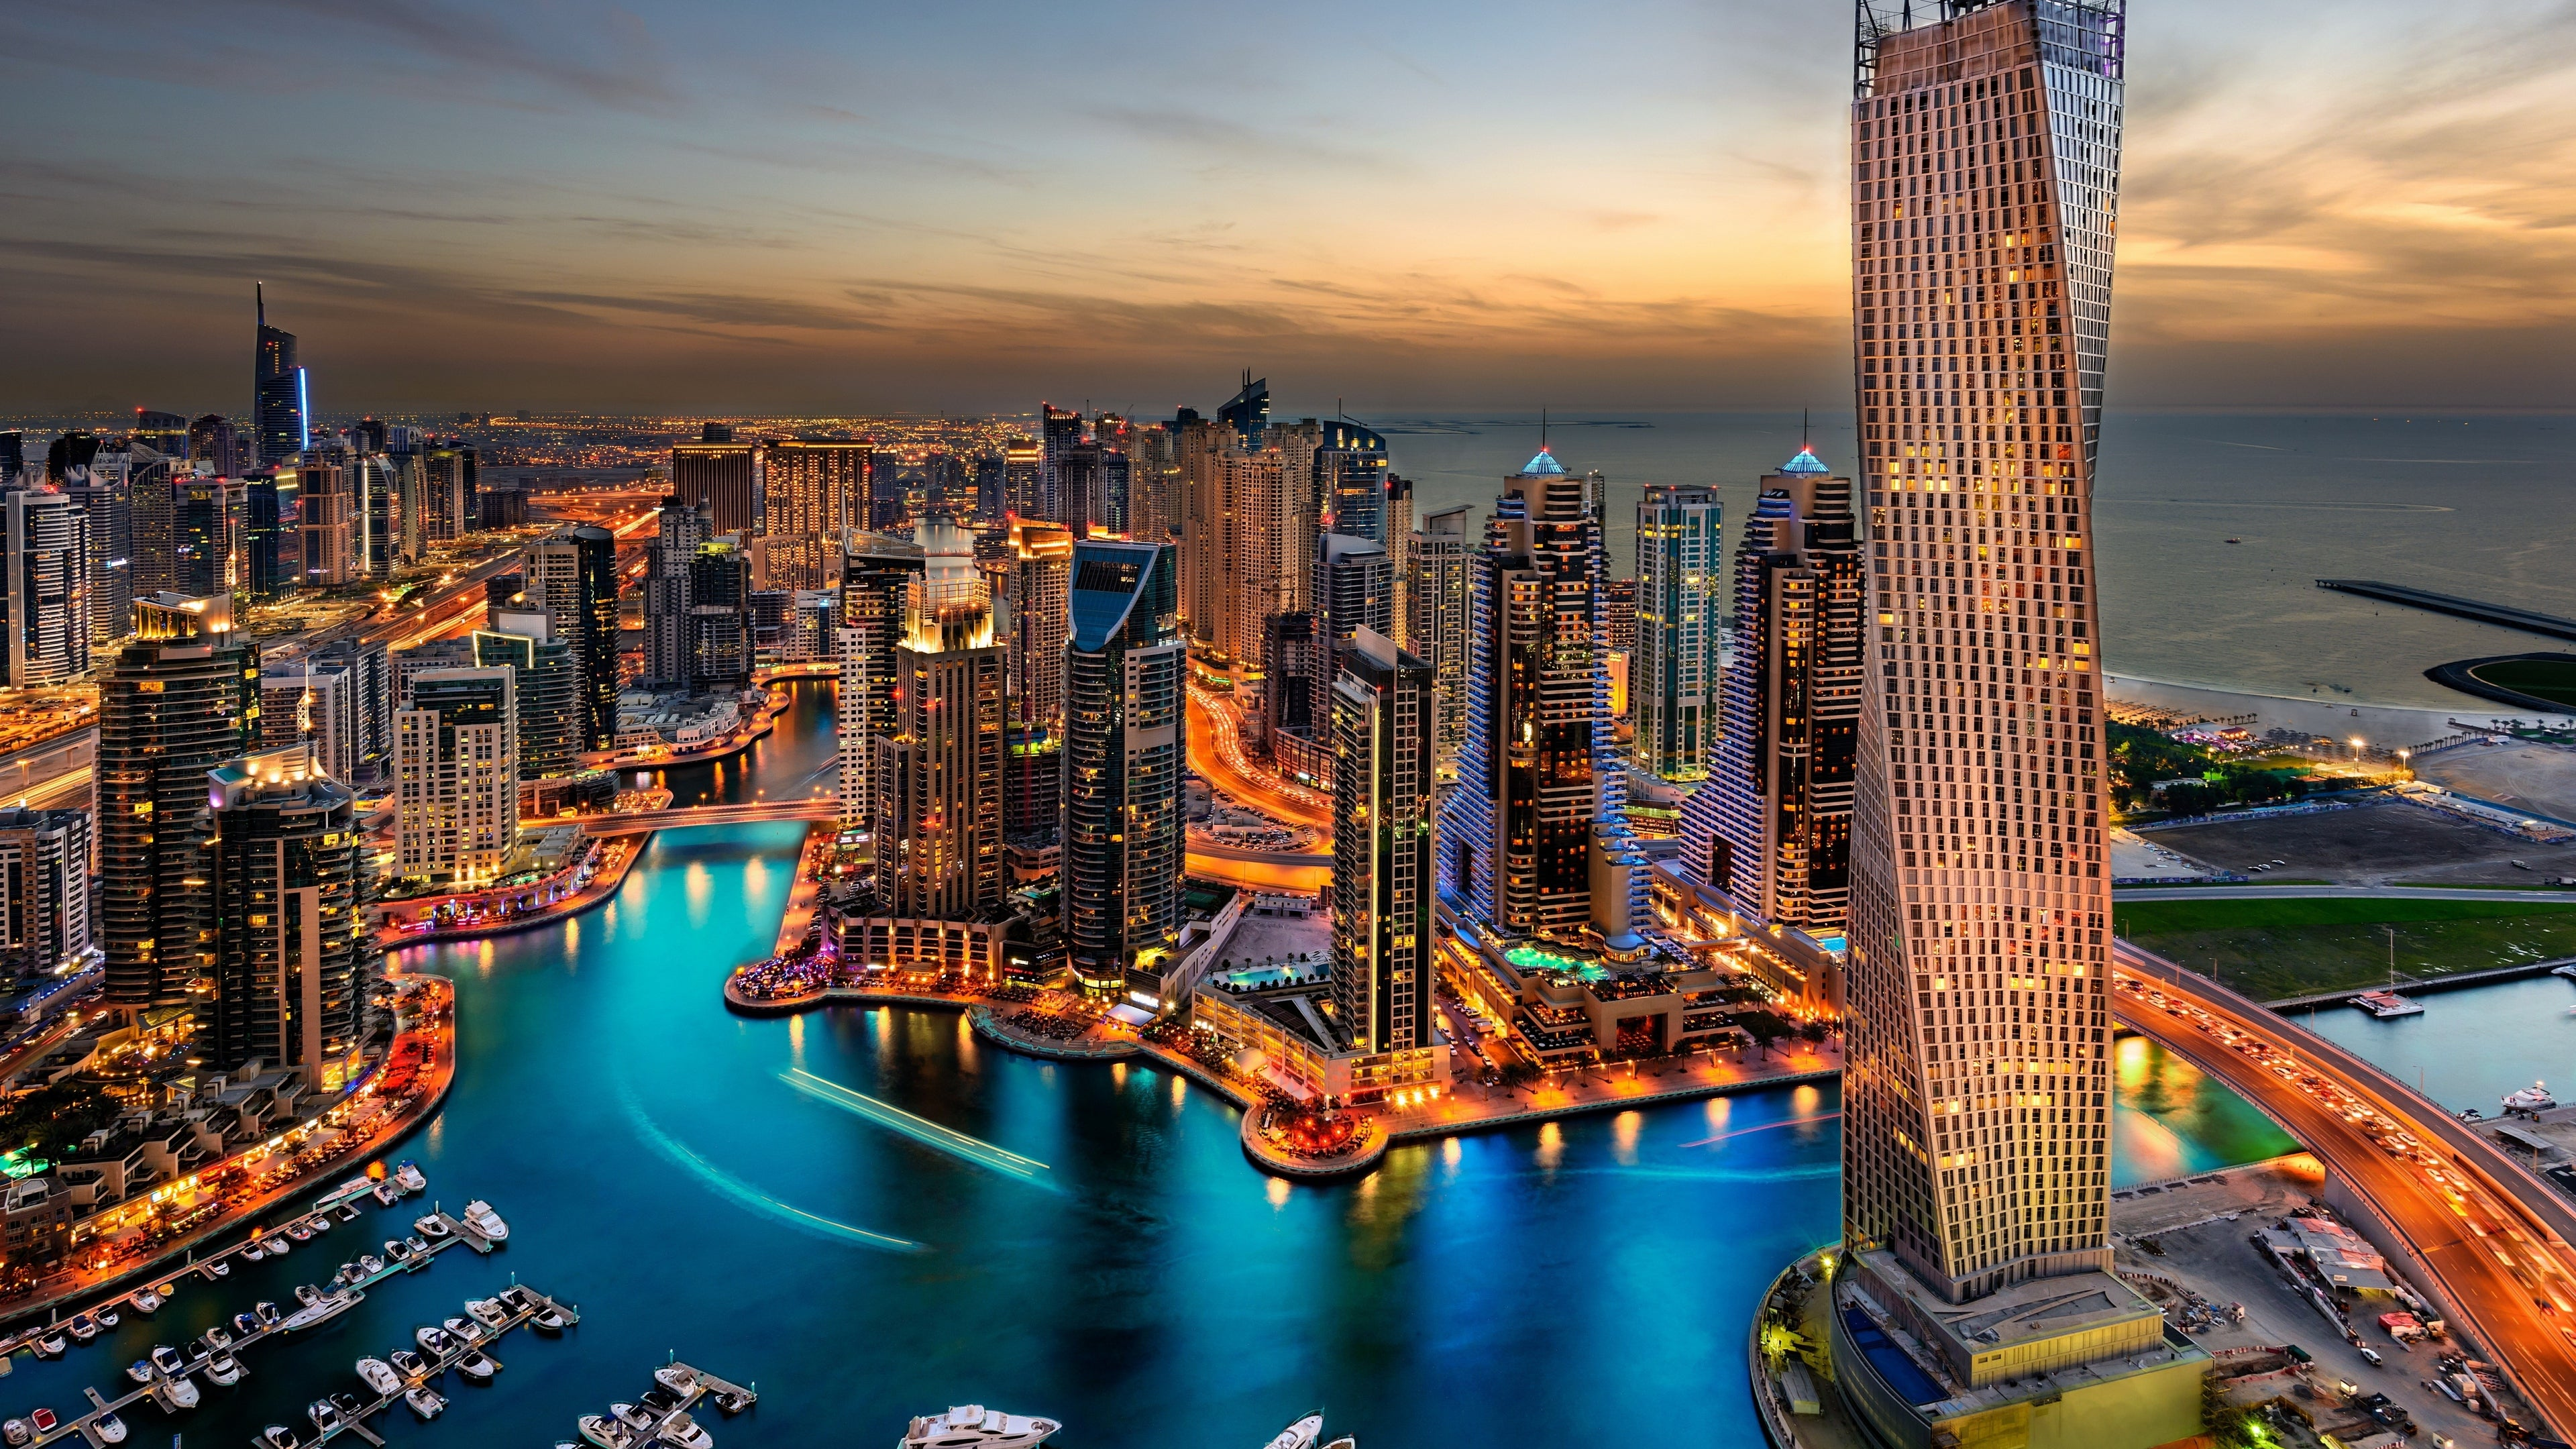 Dubai 4k Wallpapers For Your Desktop Or Mobile Screen Free